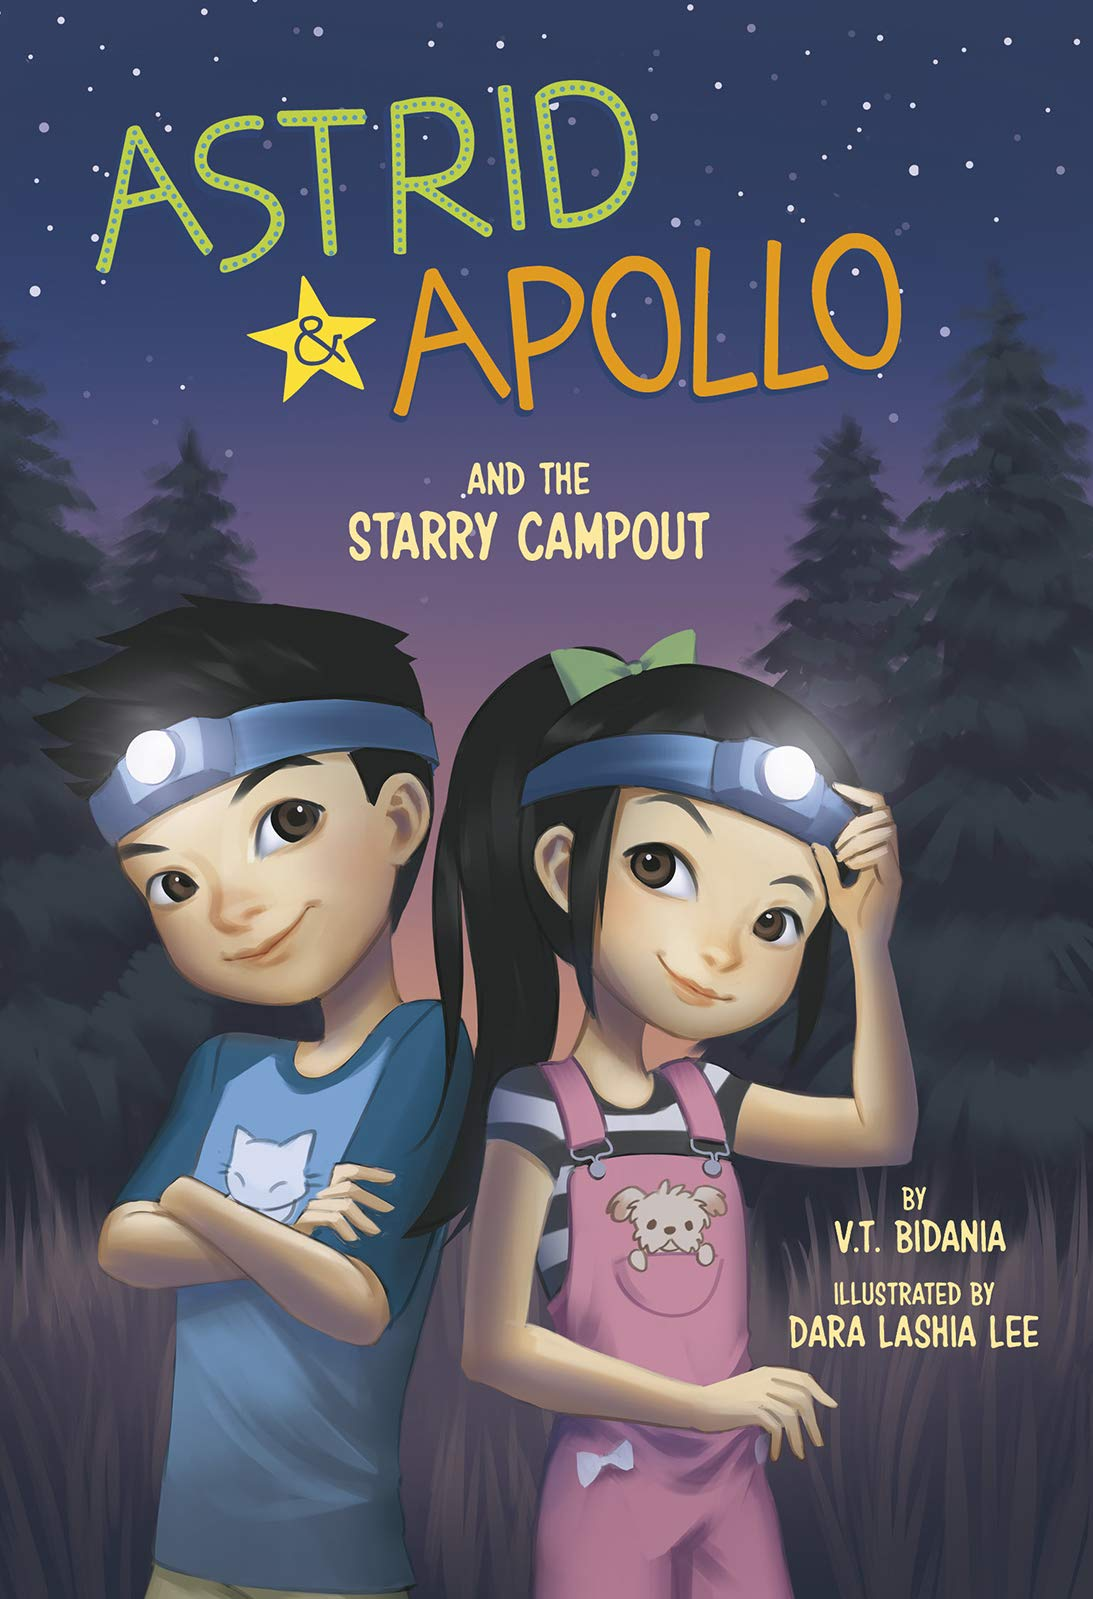 Astrid and Apollo and the Starry Campout: Bidania, V.T., Lee, Dara Lashia:  9781515861317: Amazon.com: Books